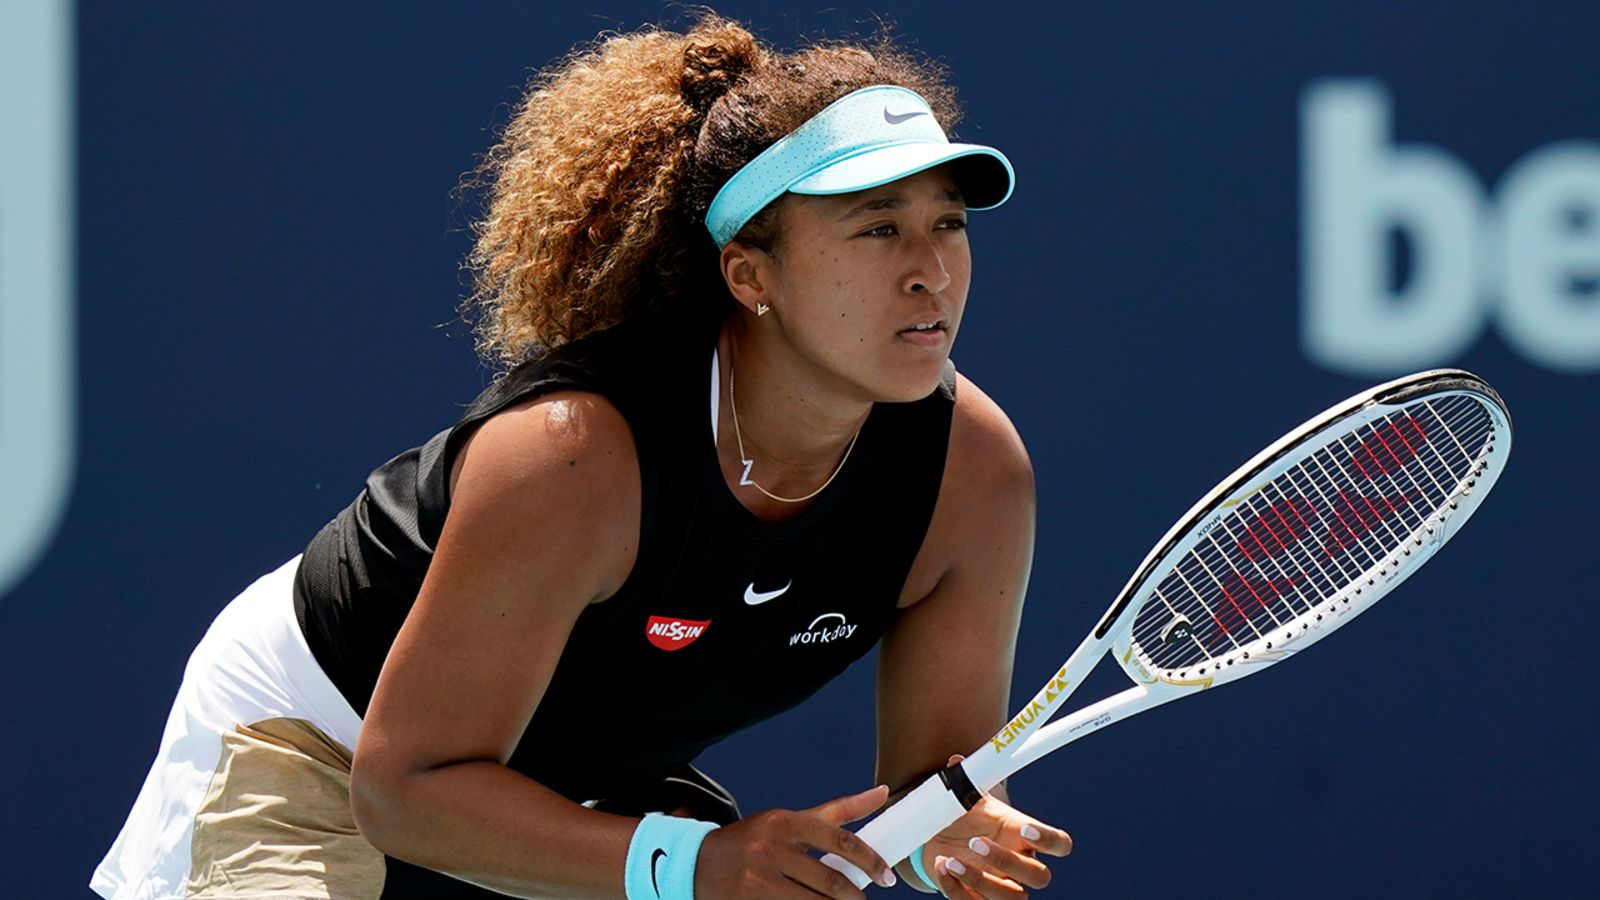 Nike backs Naomi Osaka after she withdraws from French Open tournament